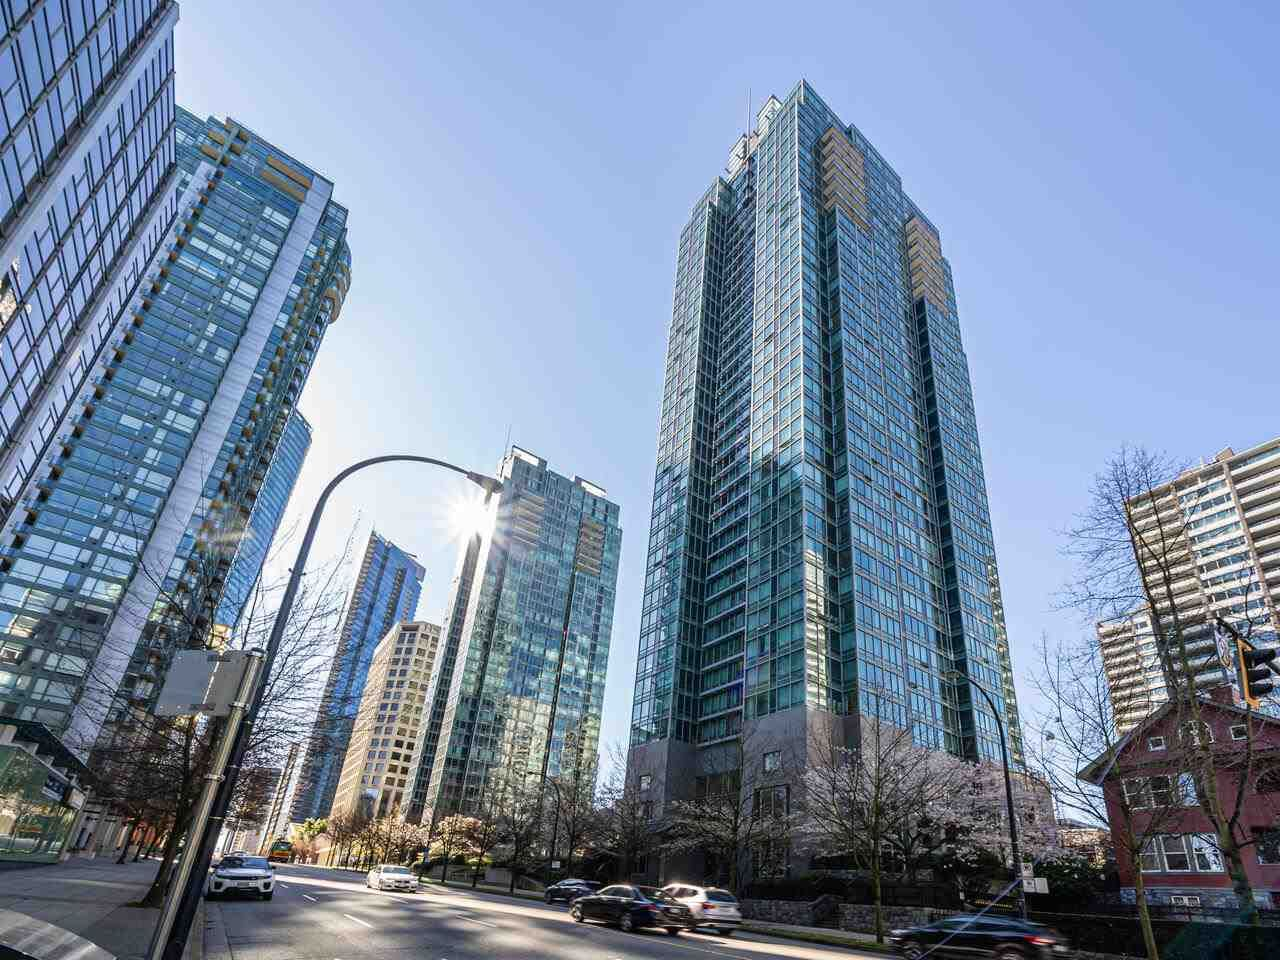 Main Photo: 2407 1288 W GEORGIA STREET in Vancouver: West End VW Condo for sale (Vancouver West)  : MLS®# R2566054